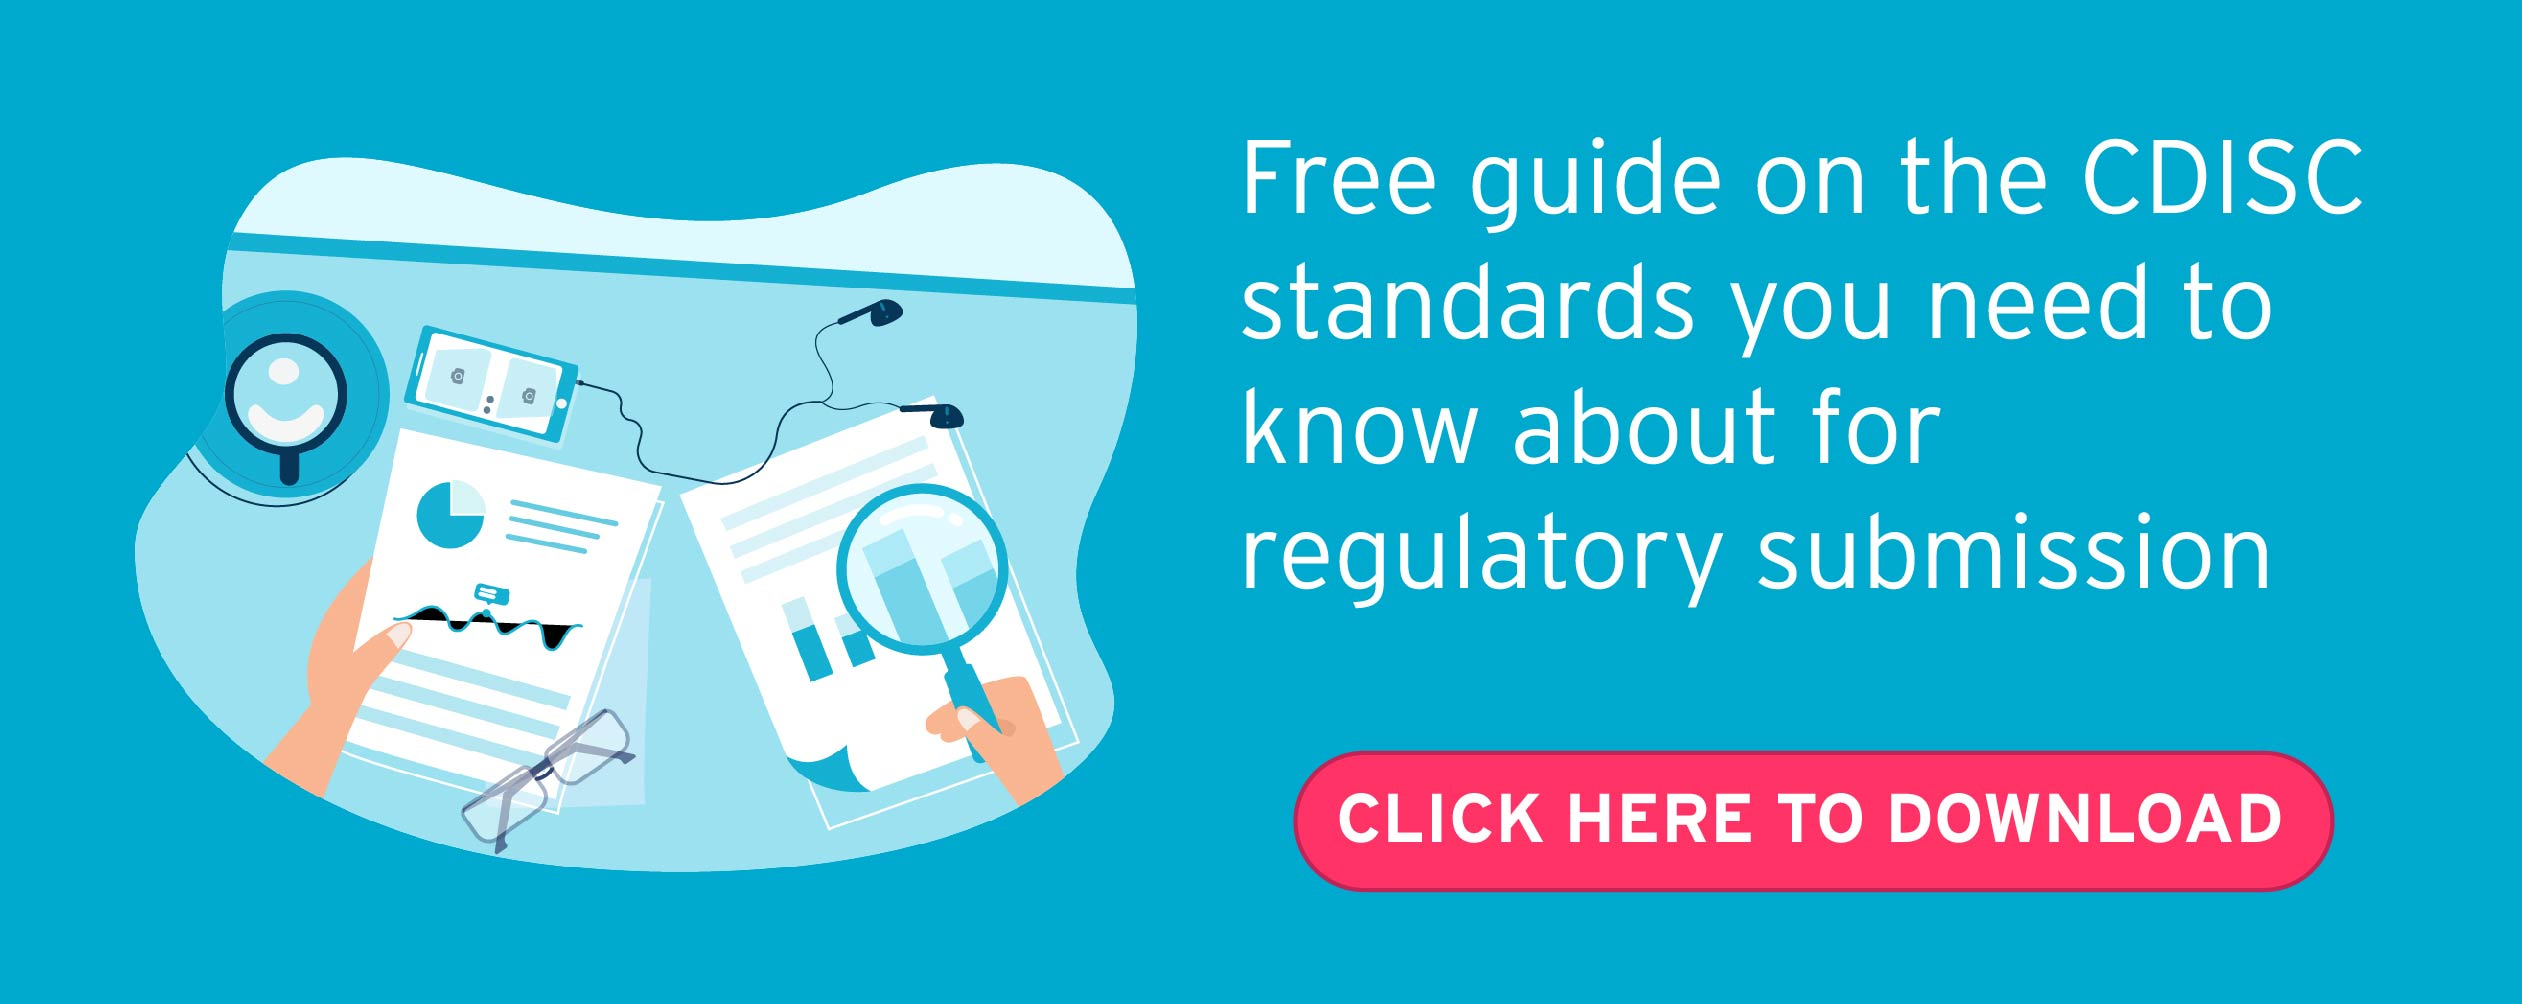 CDISC Standards Guide by Formedix